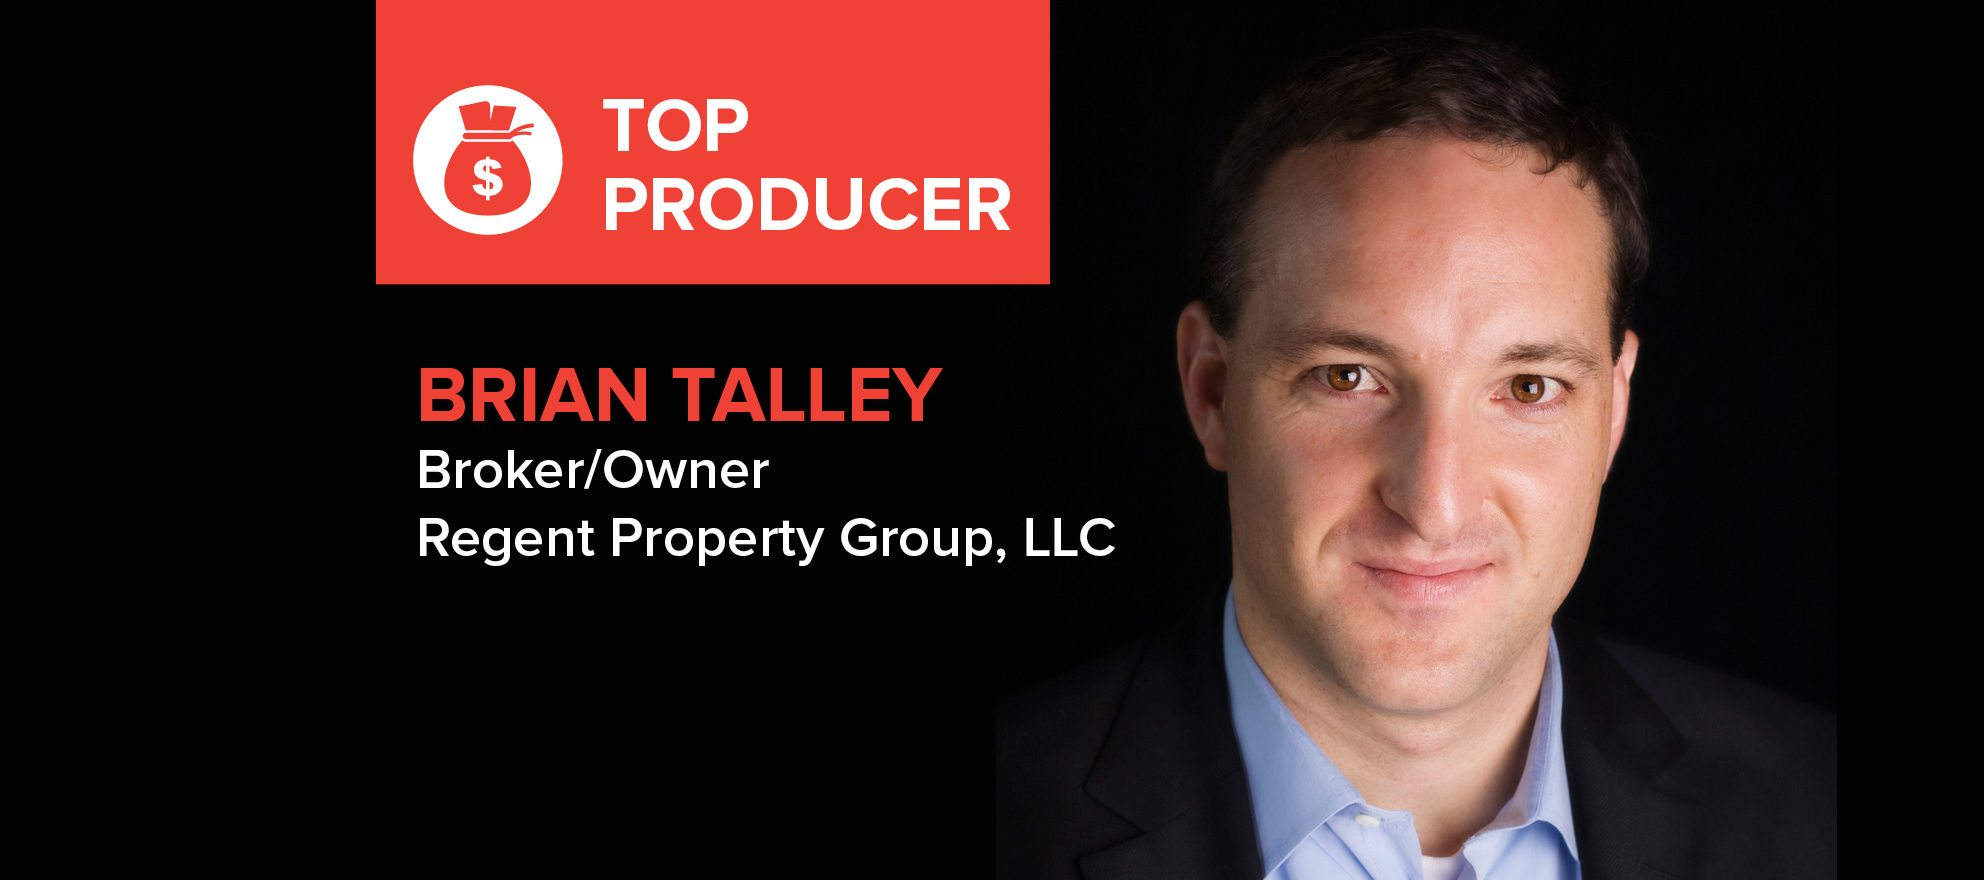 Brian Talley: 'One can take many paths and be happy and successful'